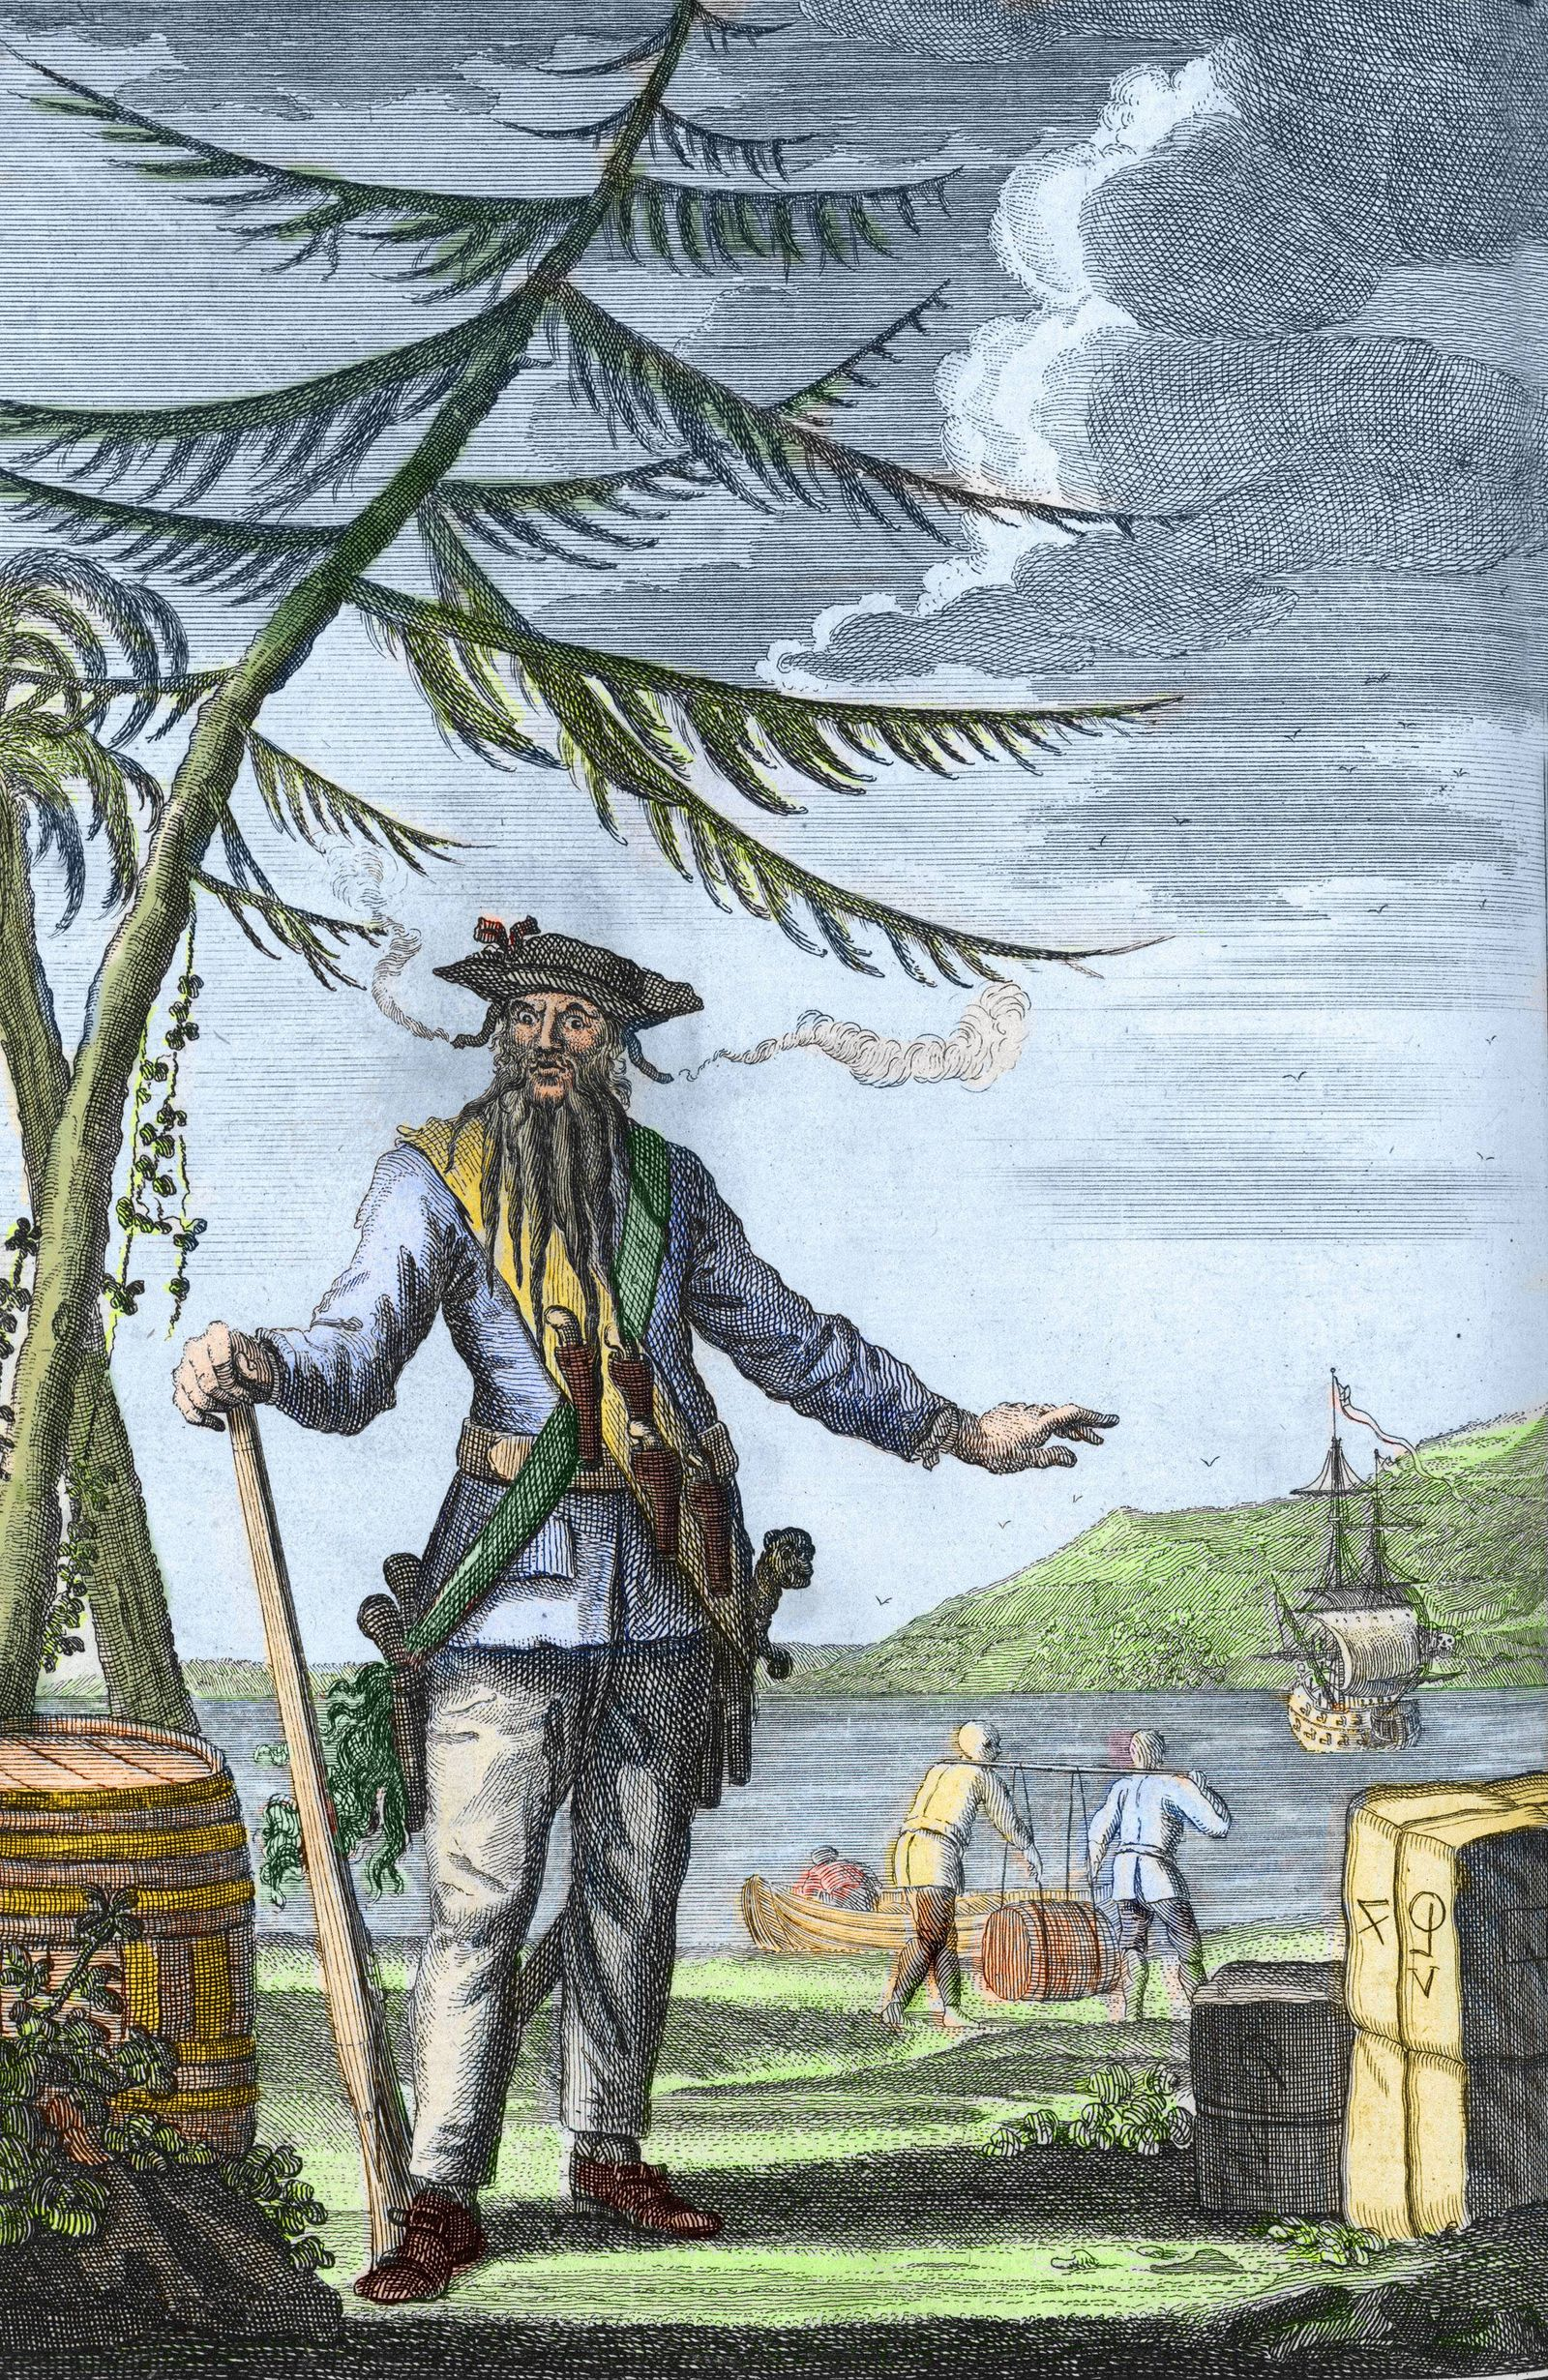 Edward Blackbeard Teach 1680 1718 Capitaine Edward Teach Thatch dit Barbenoire Barbe Noire